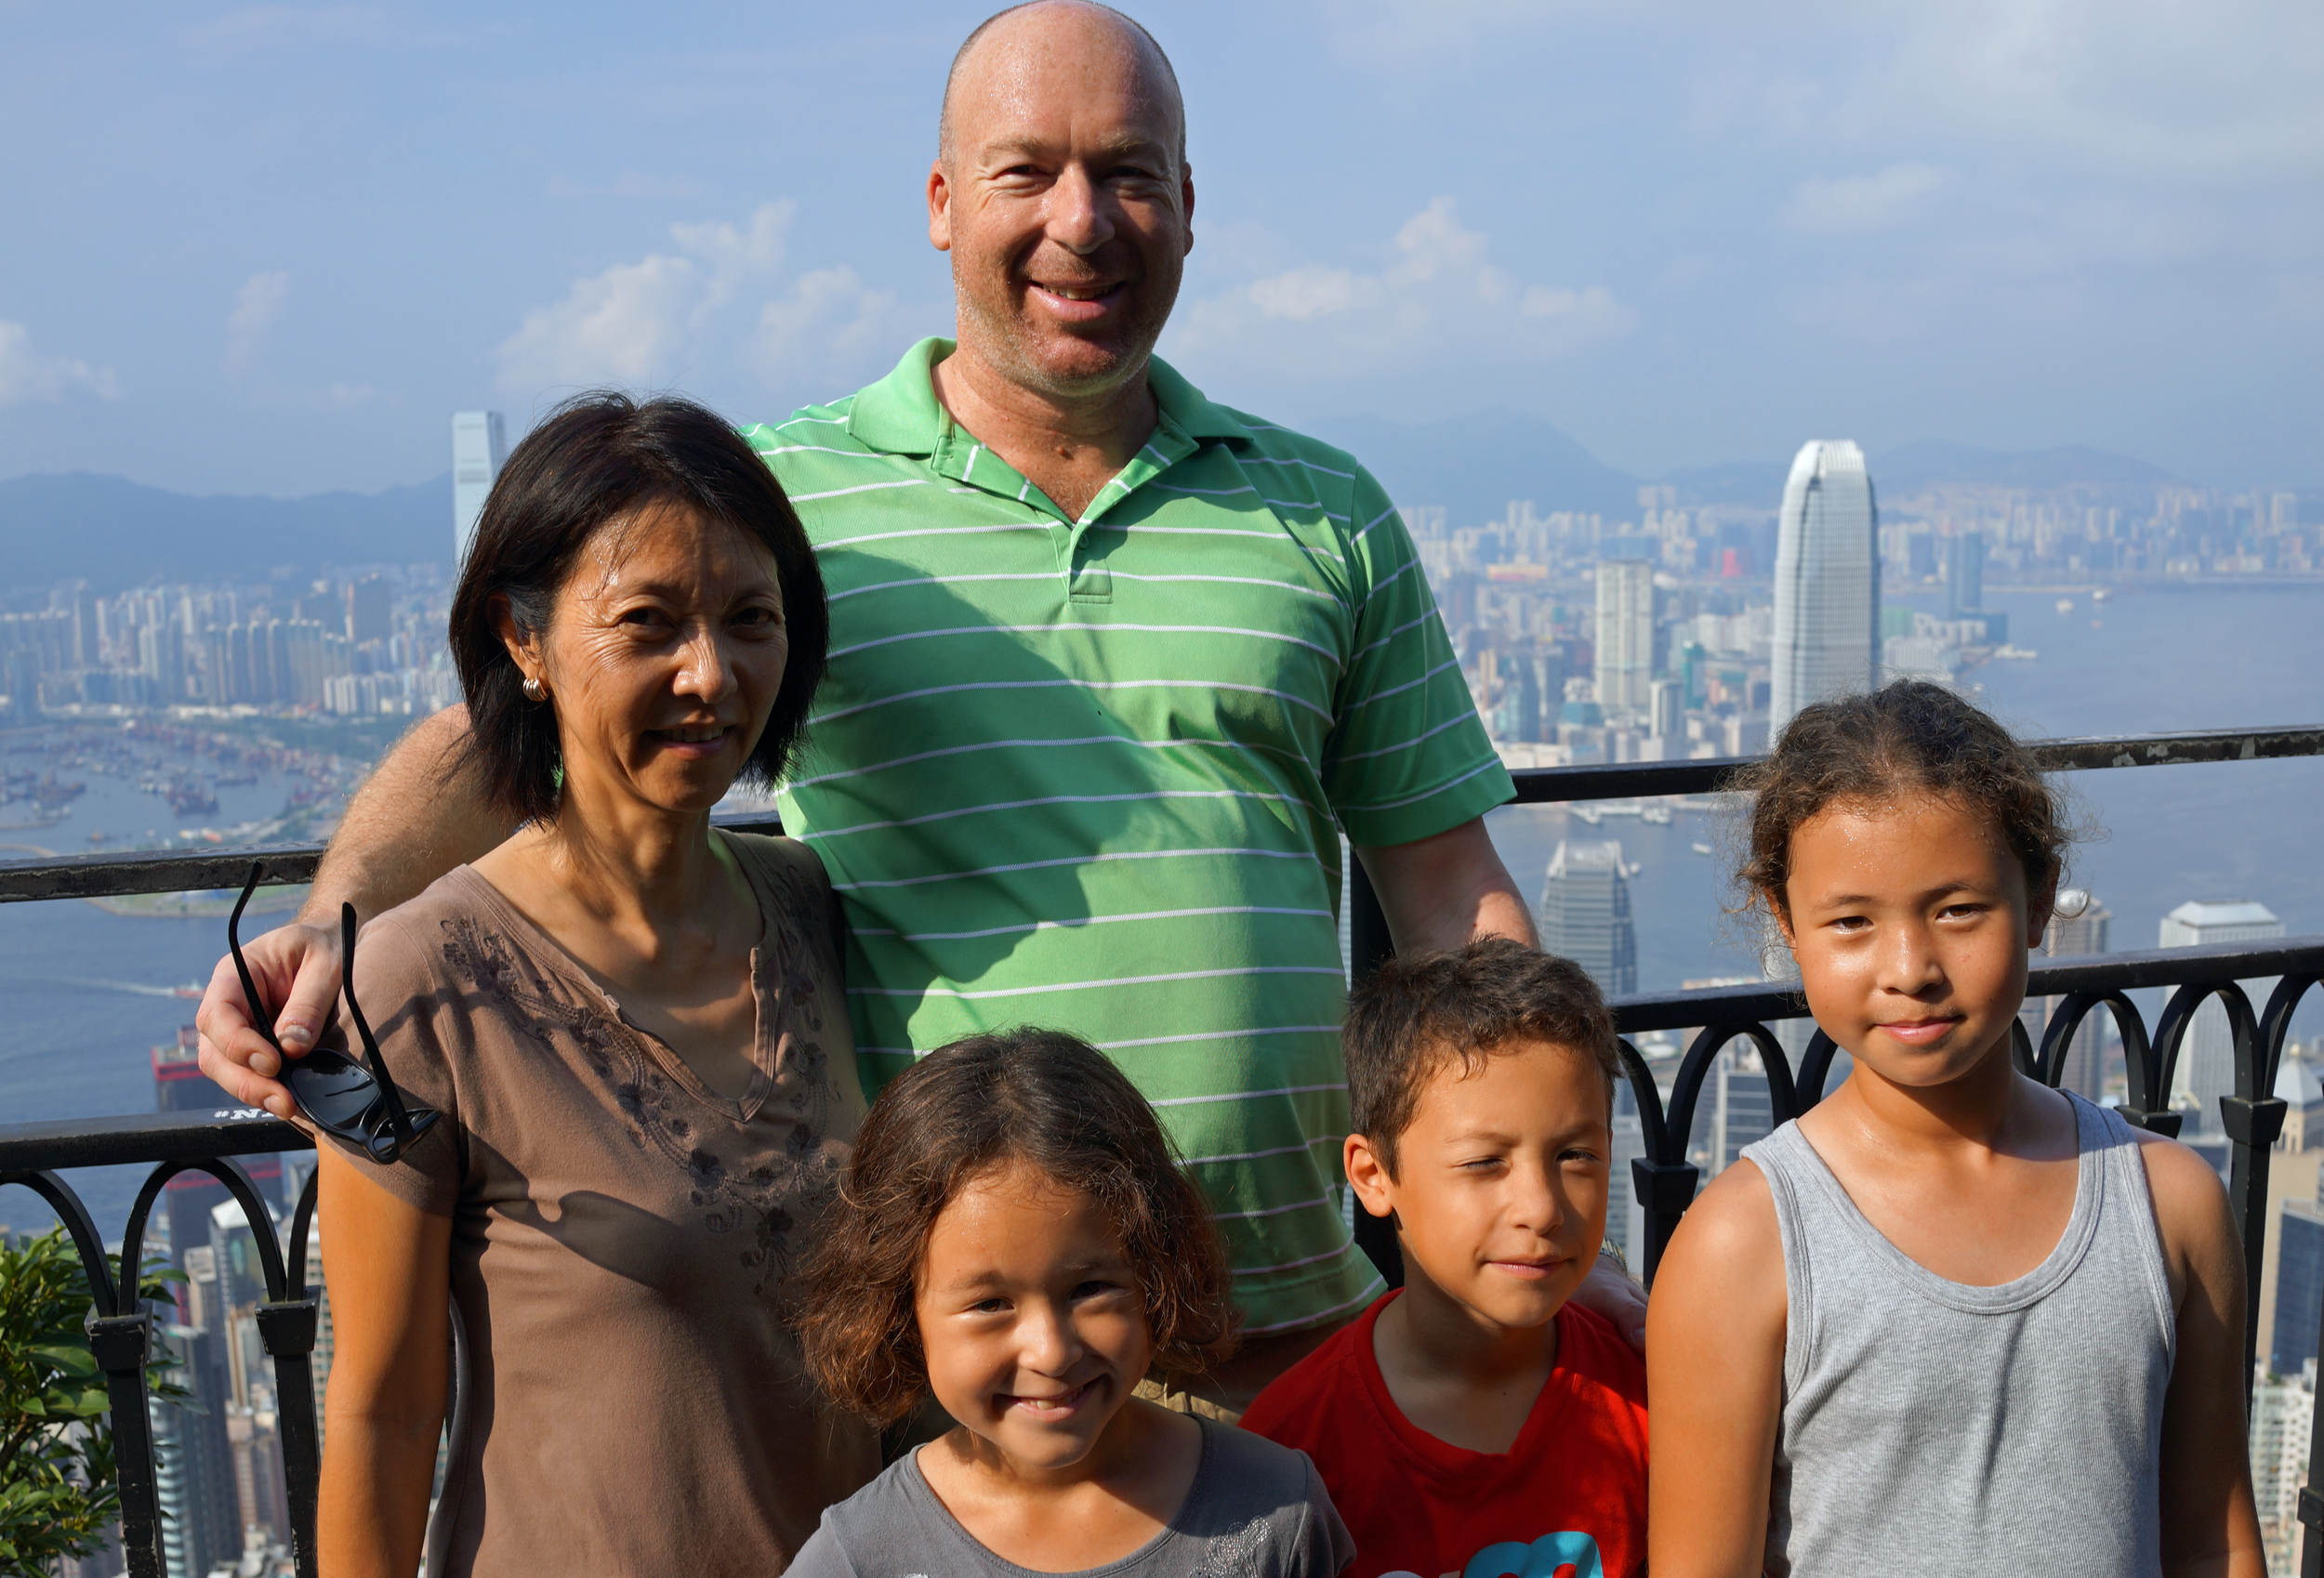 The Korten family from South Africa enjoying the stunning city views from my spot at Victoria Peak, Hong Kong